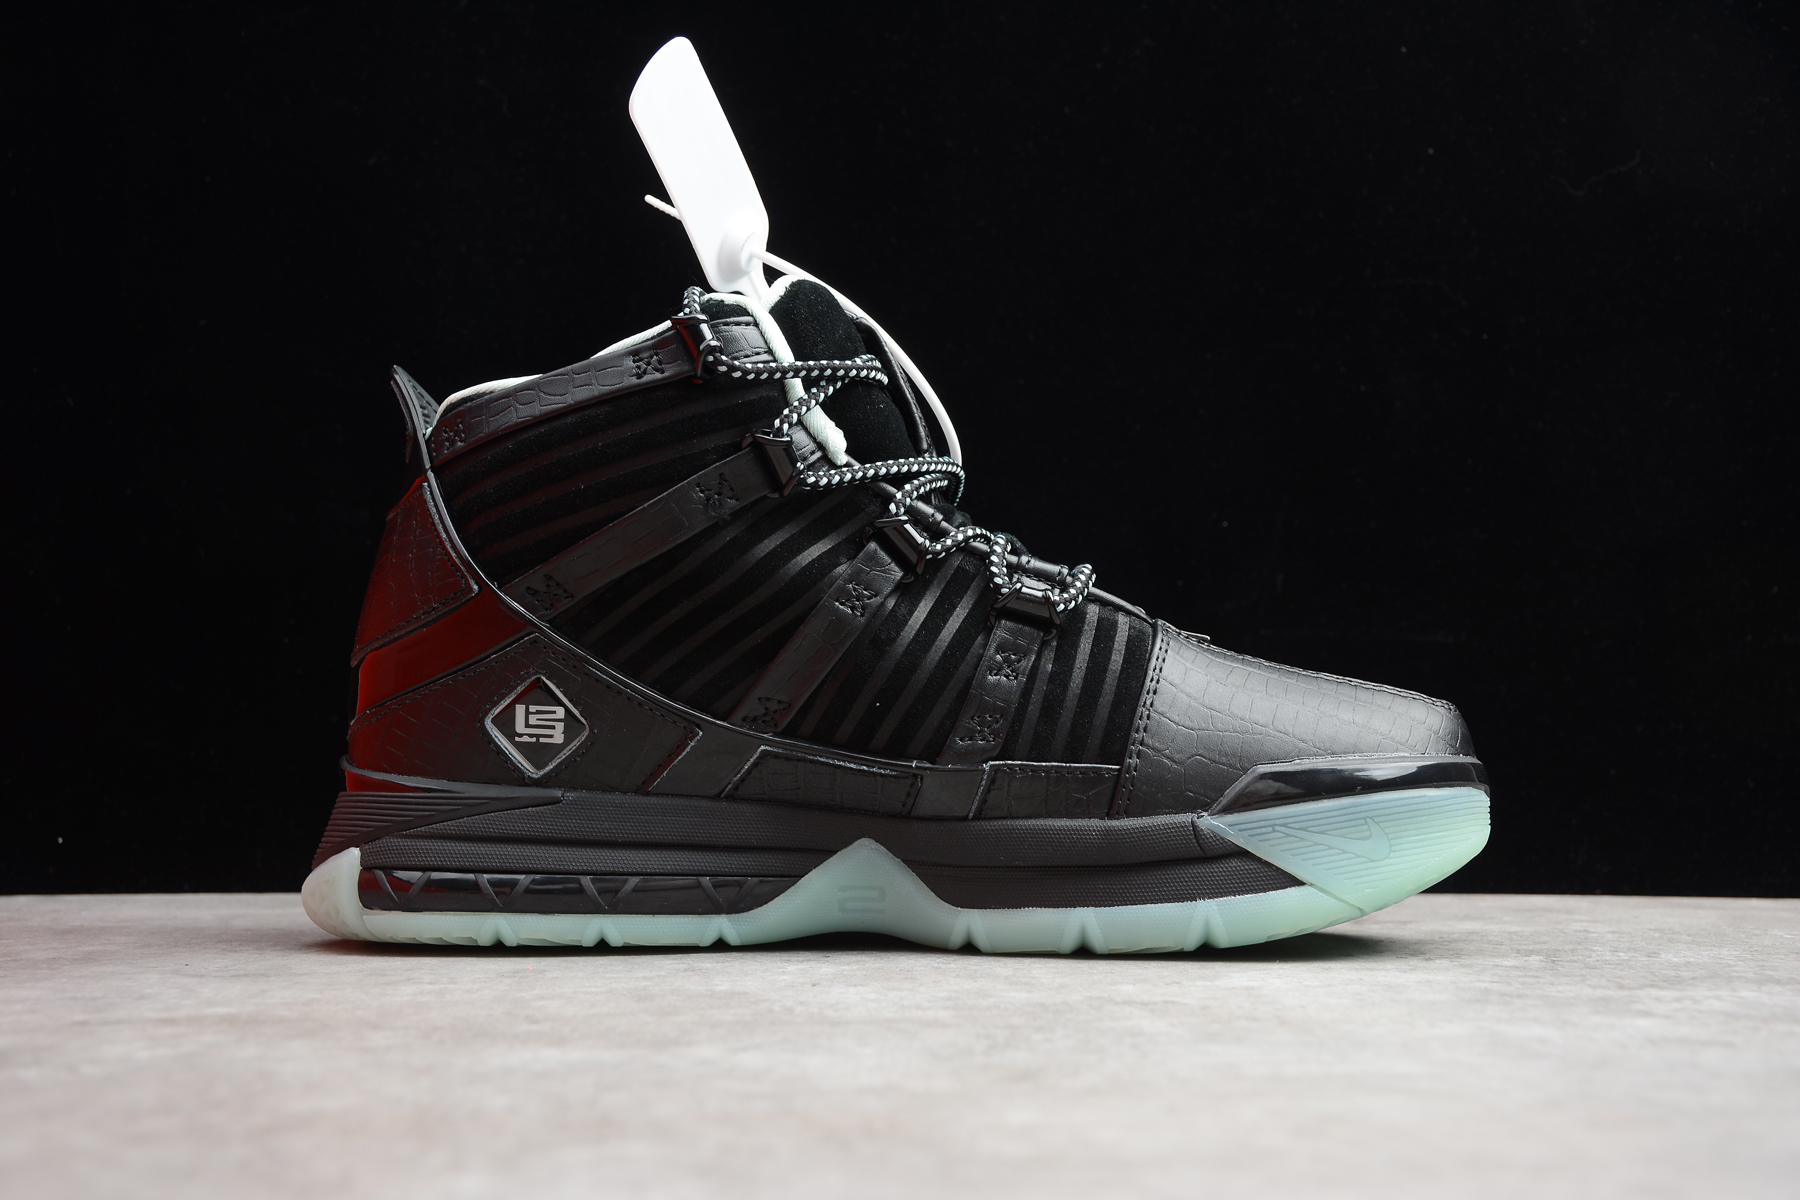 New Release Nike ZOOM LeBron 3 Midnight Black